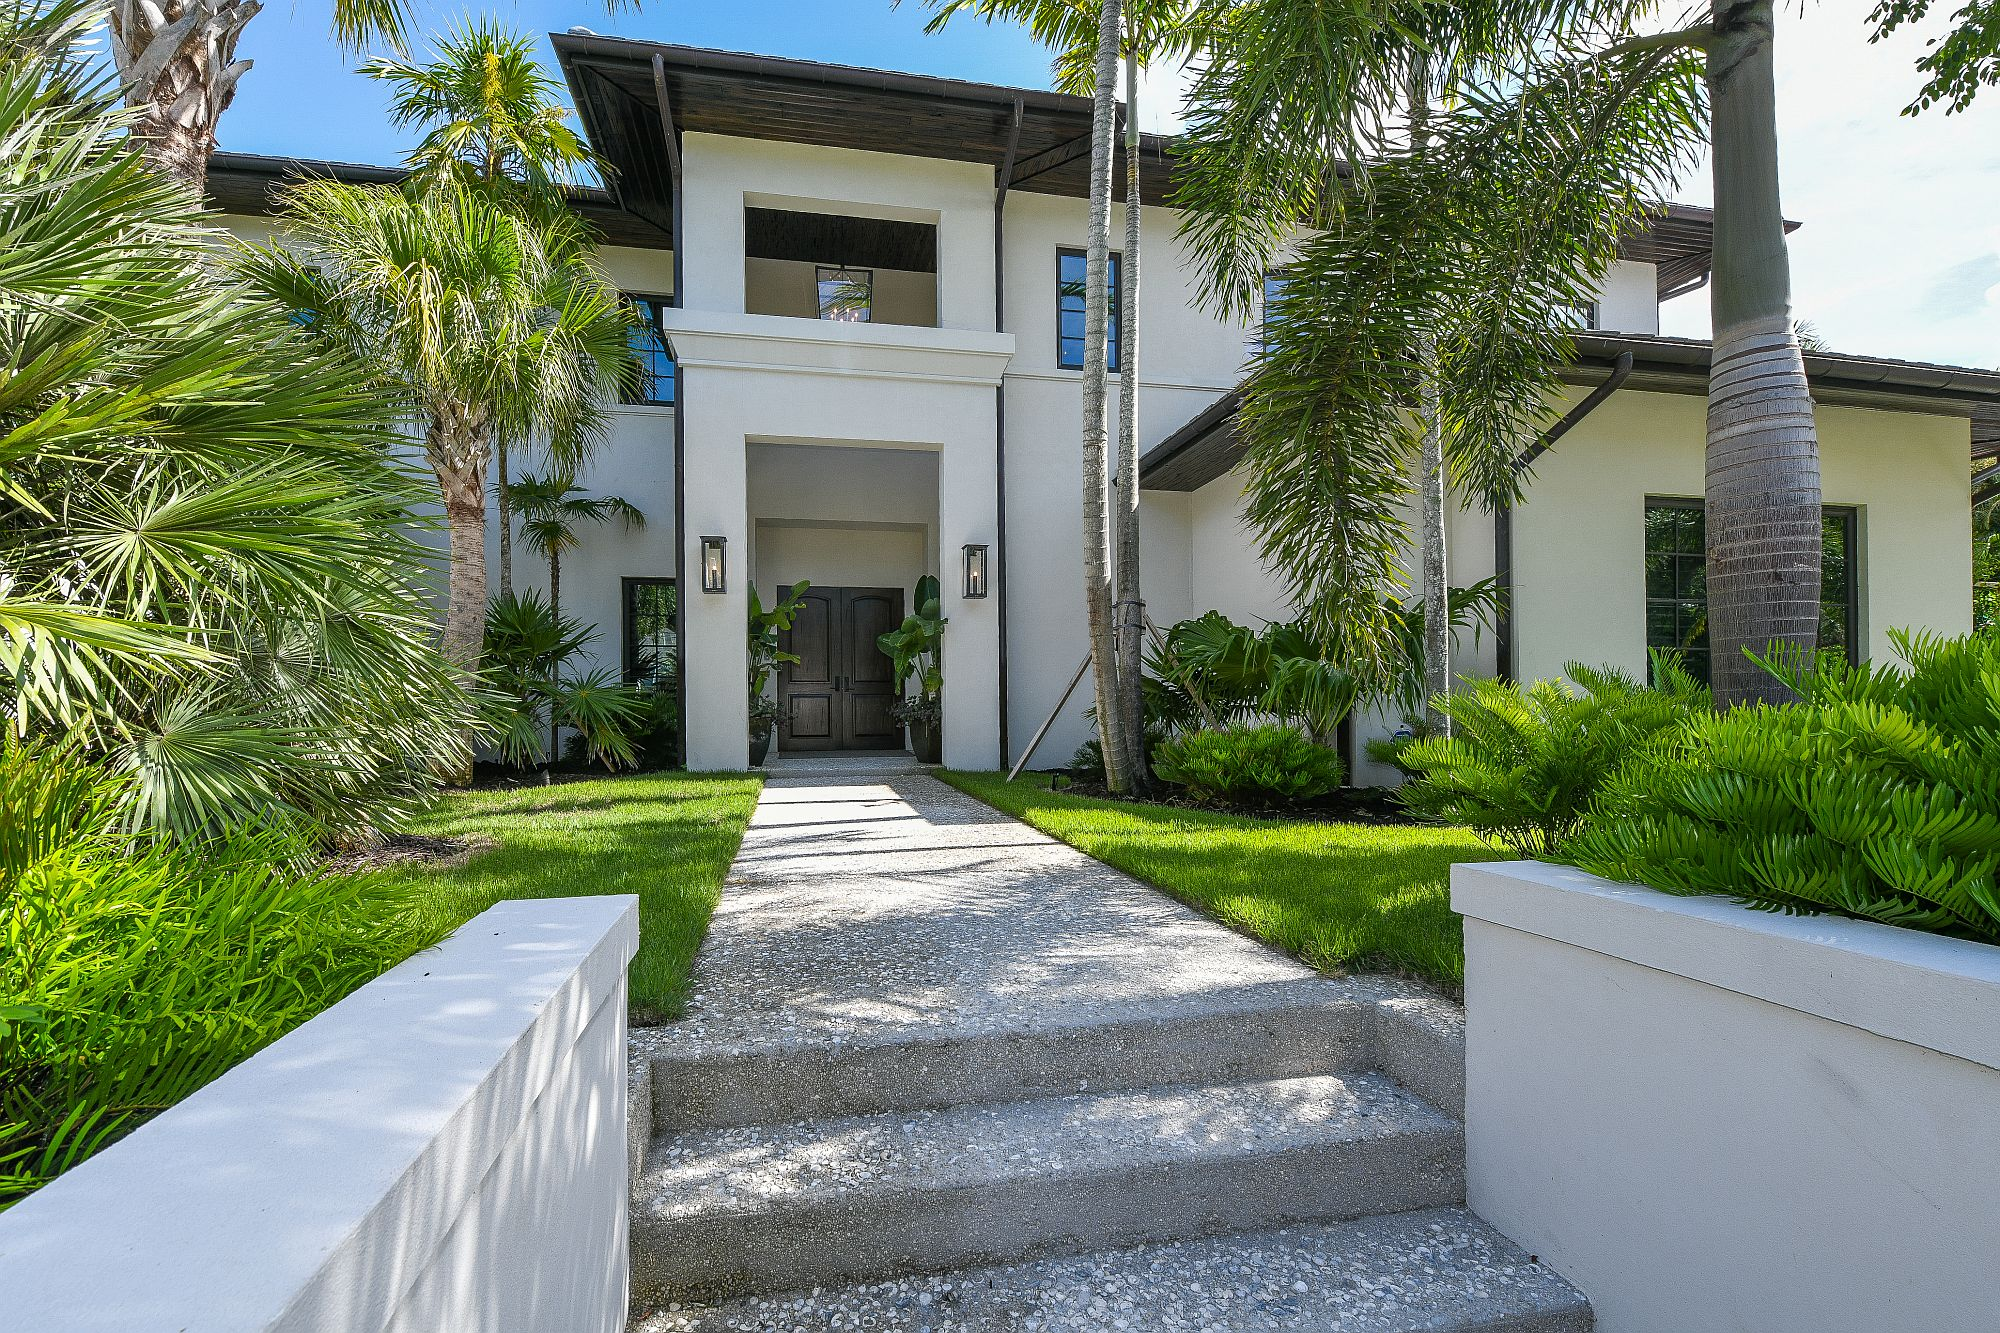 French West Indies style is combined with tropical goodness of Florida to create a luxurious modern home